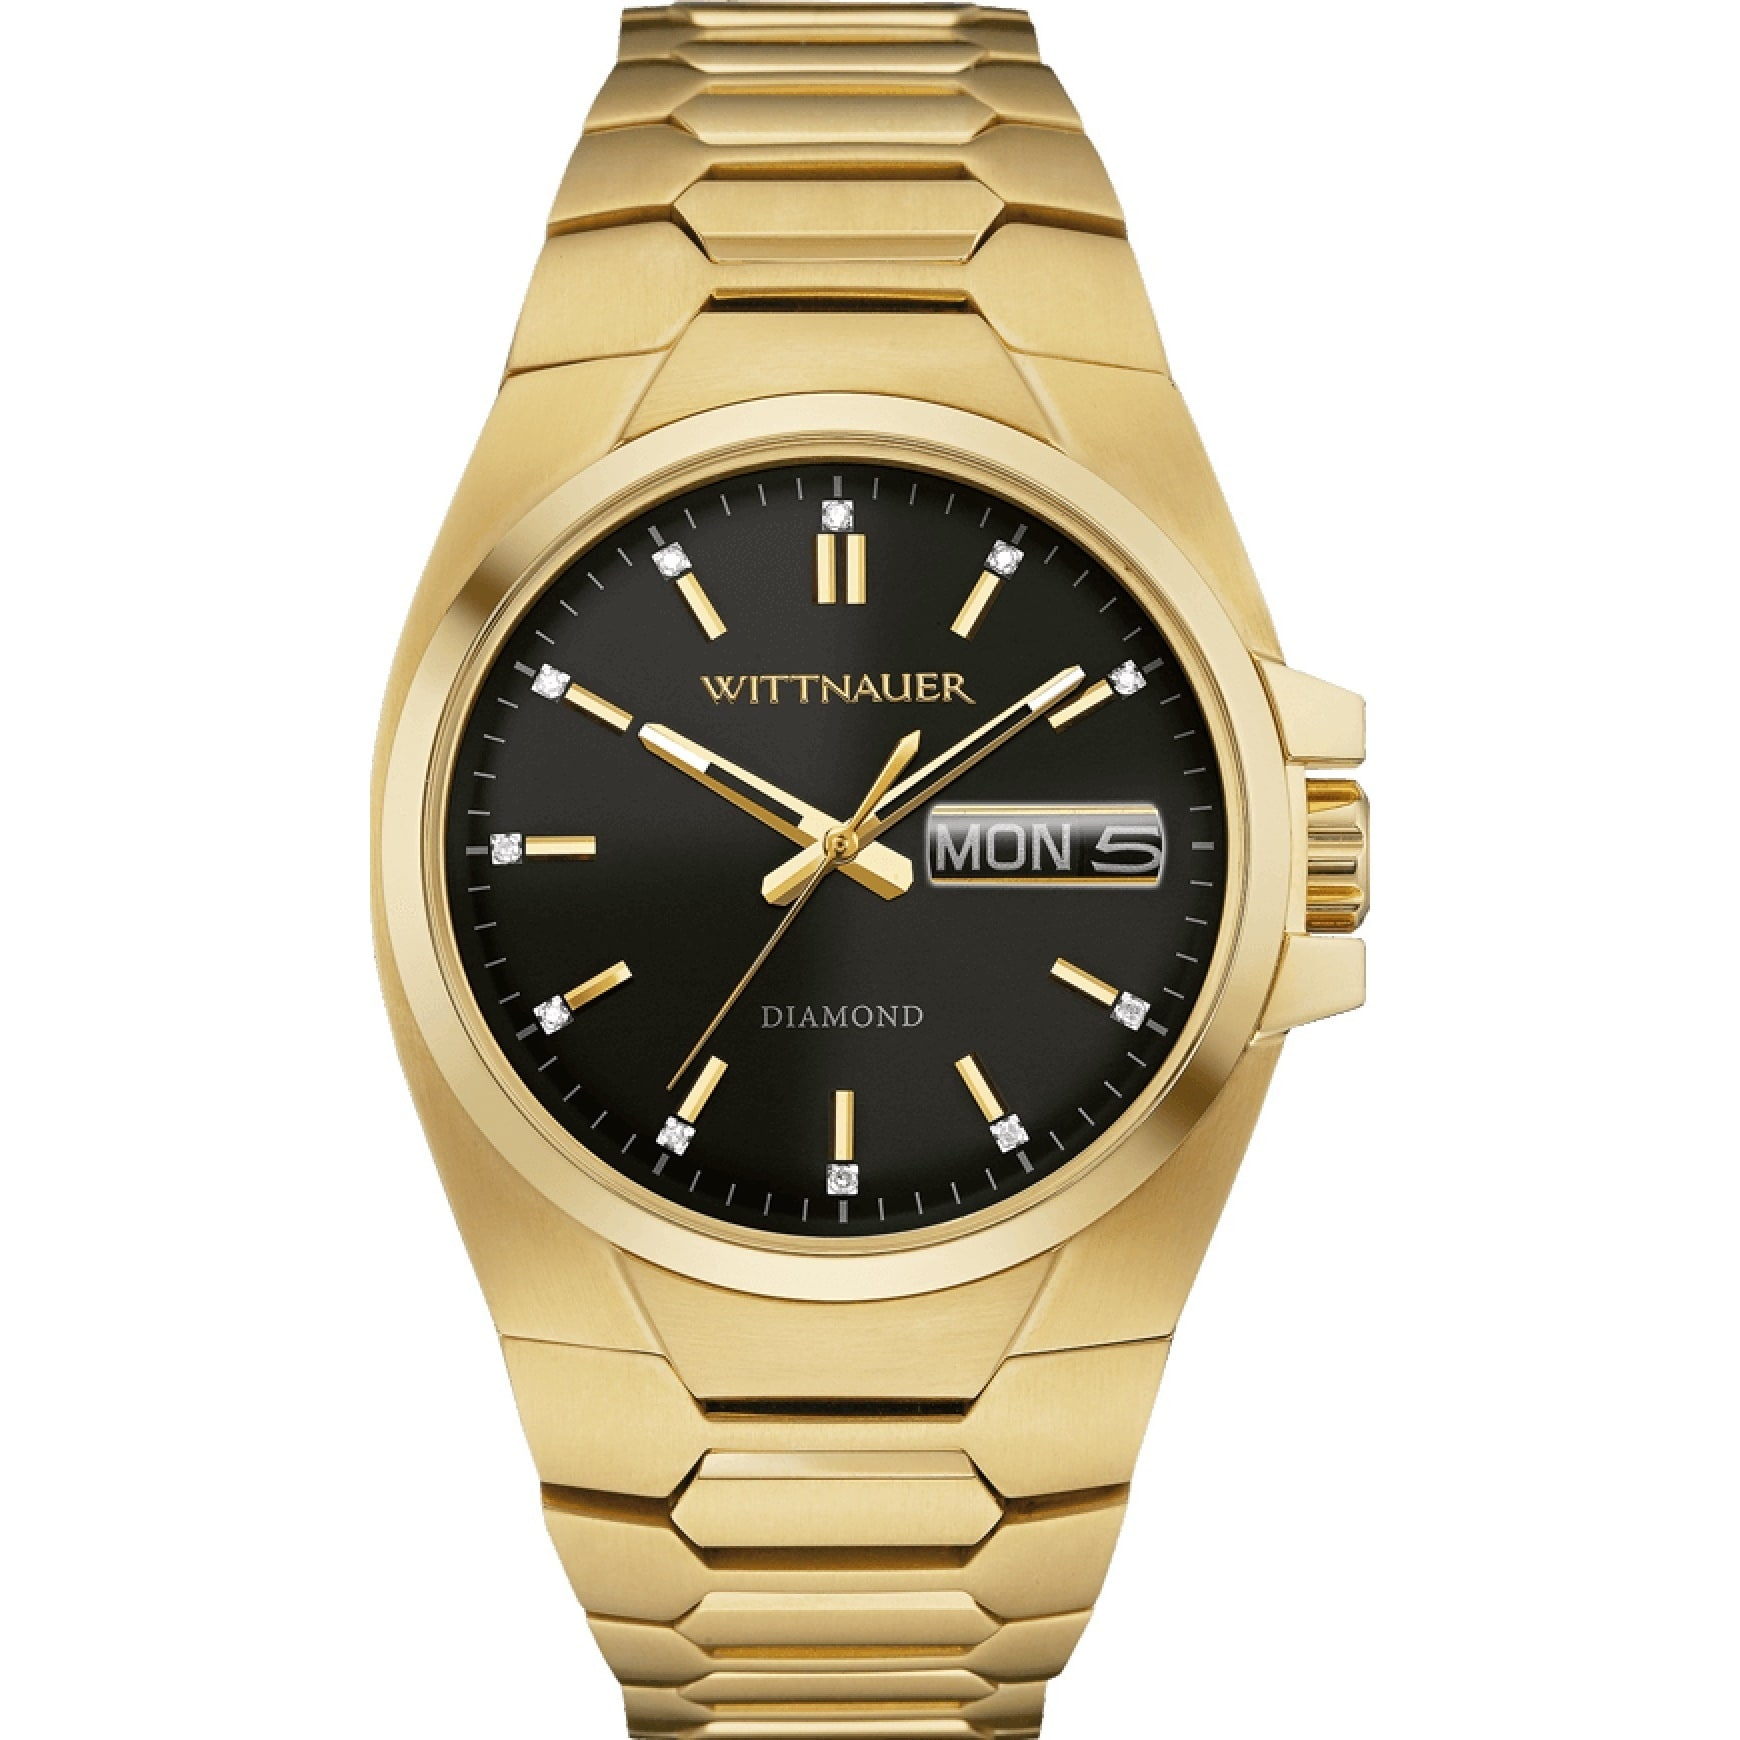 BULOVA Wittnauer Men's WN3059 Gold and Black Dial Watch (...